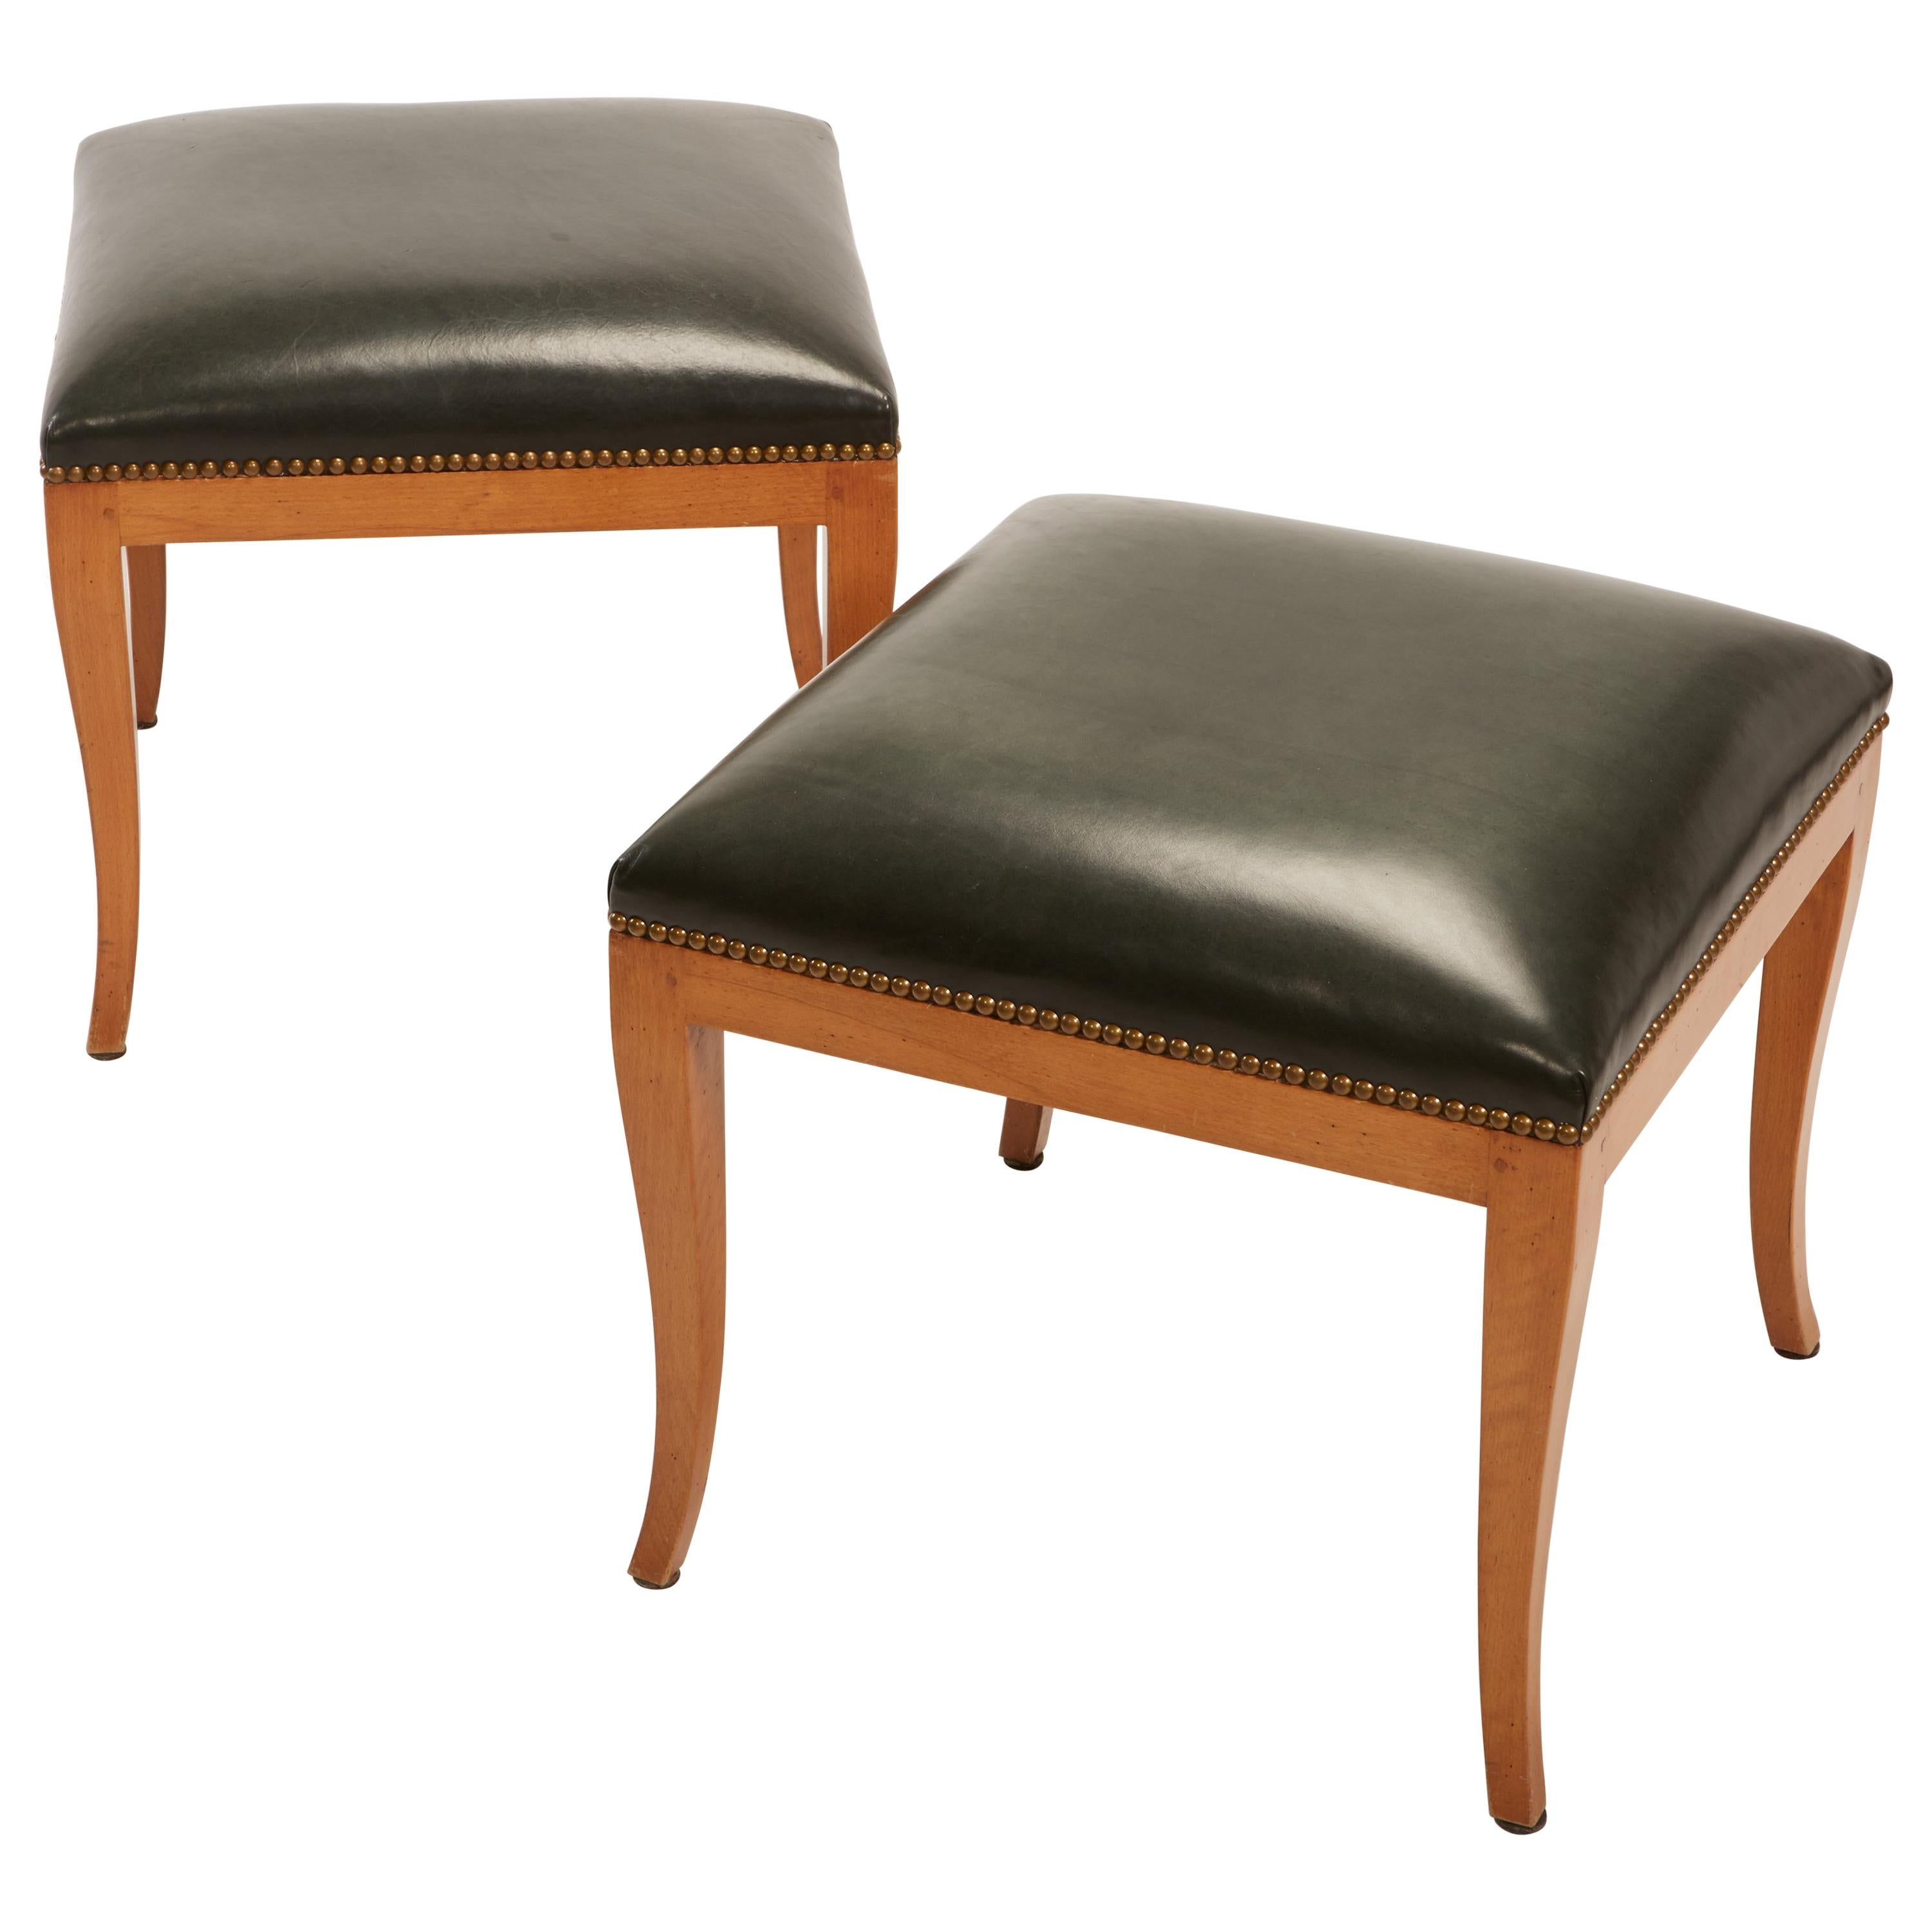 Pair of Fruitwood Biedermeier Style Ottomans with Leather and Brass Tacks